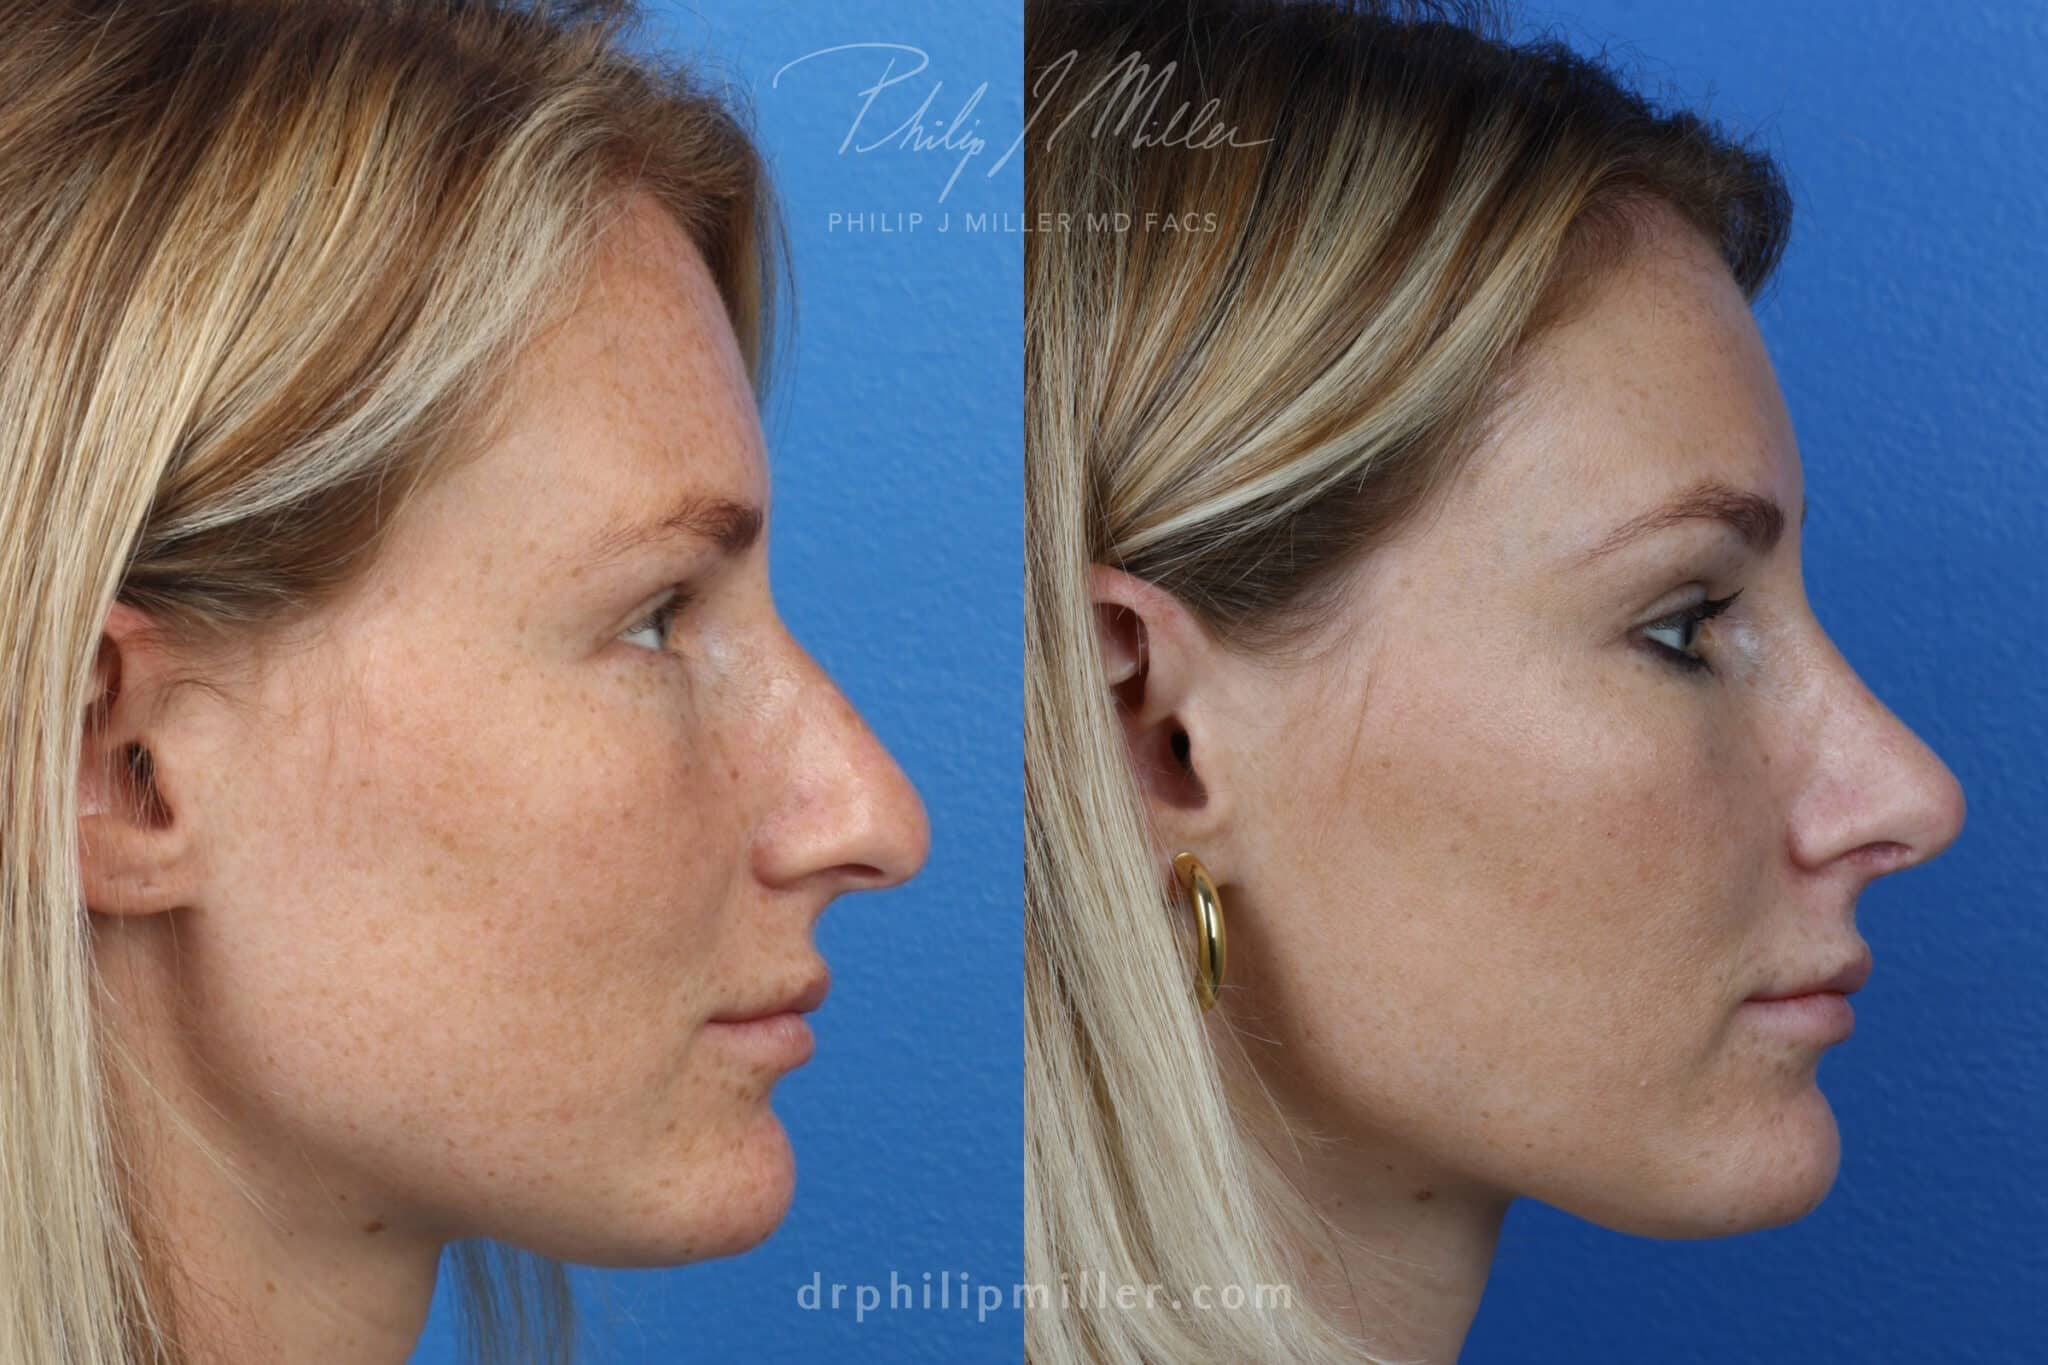 Rhinoplasty to correct the nasal bridge and tip by Dr. Miller